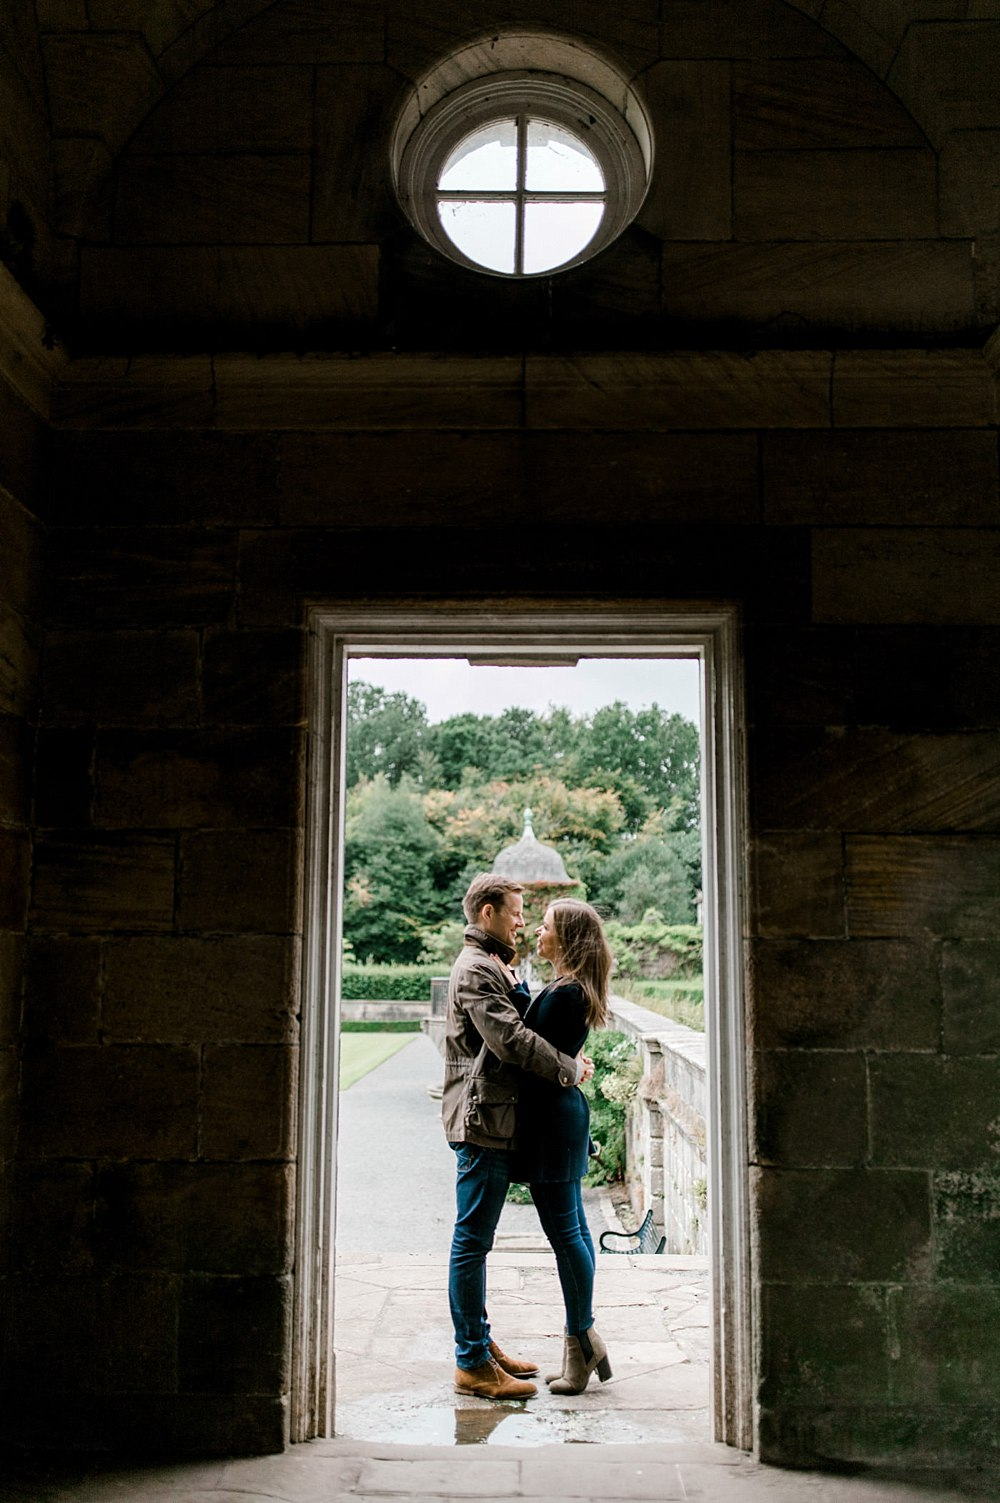 pollok park engagement shoot 0159.jpg